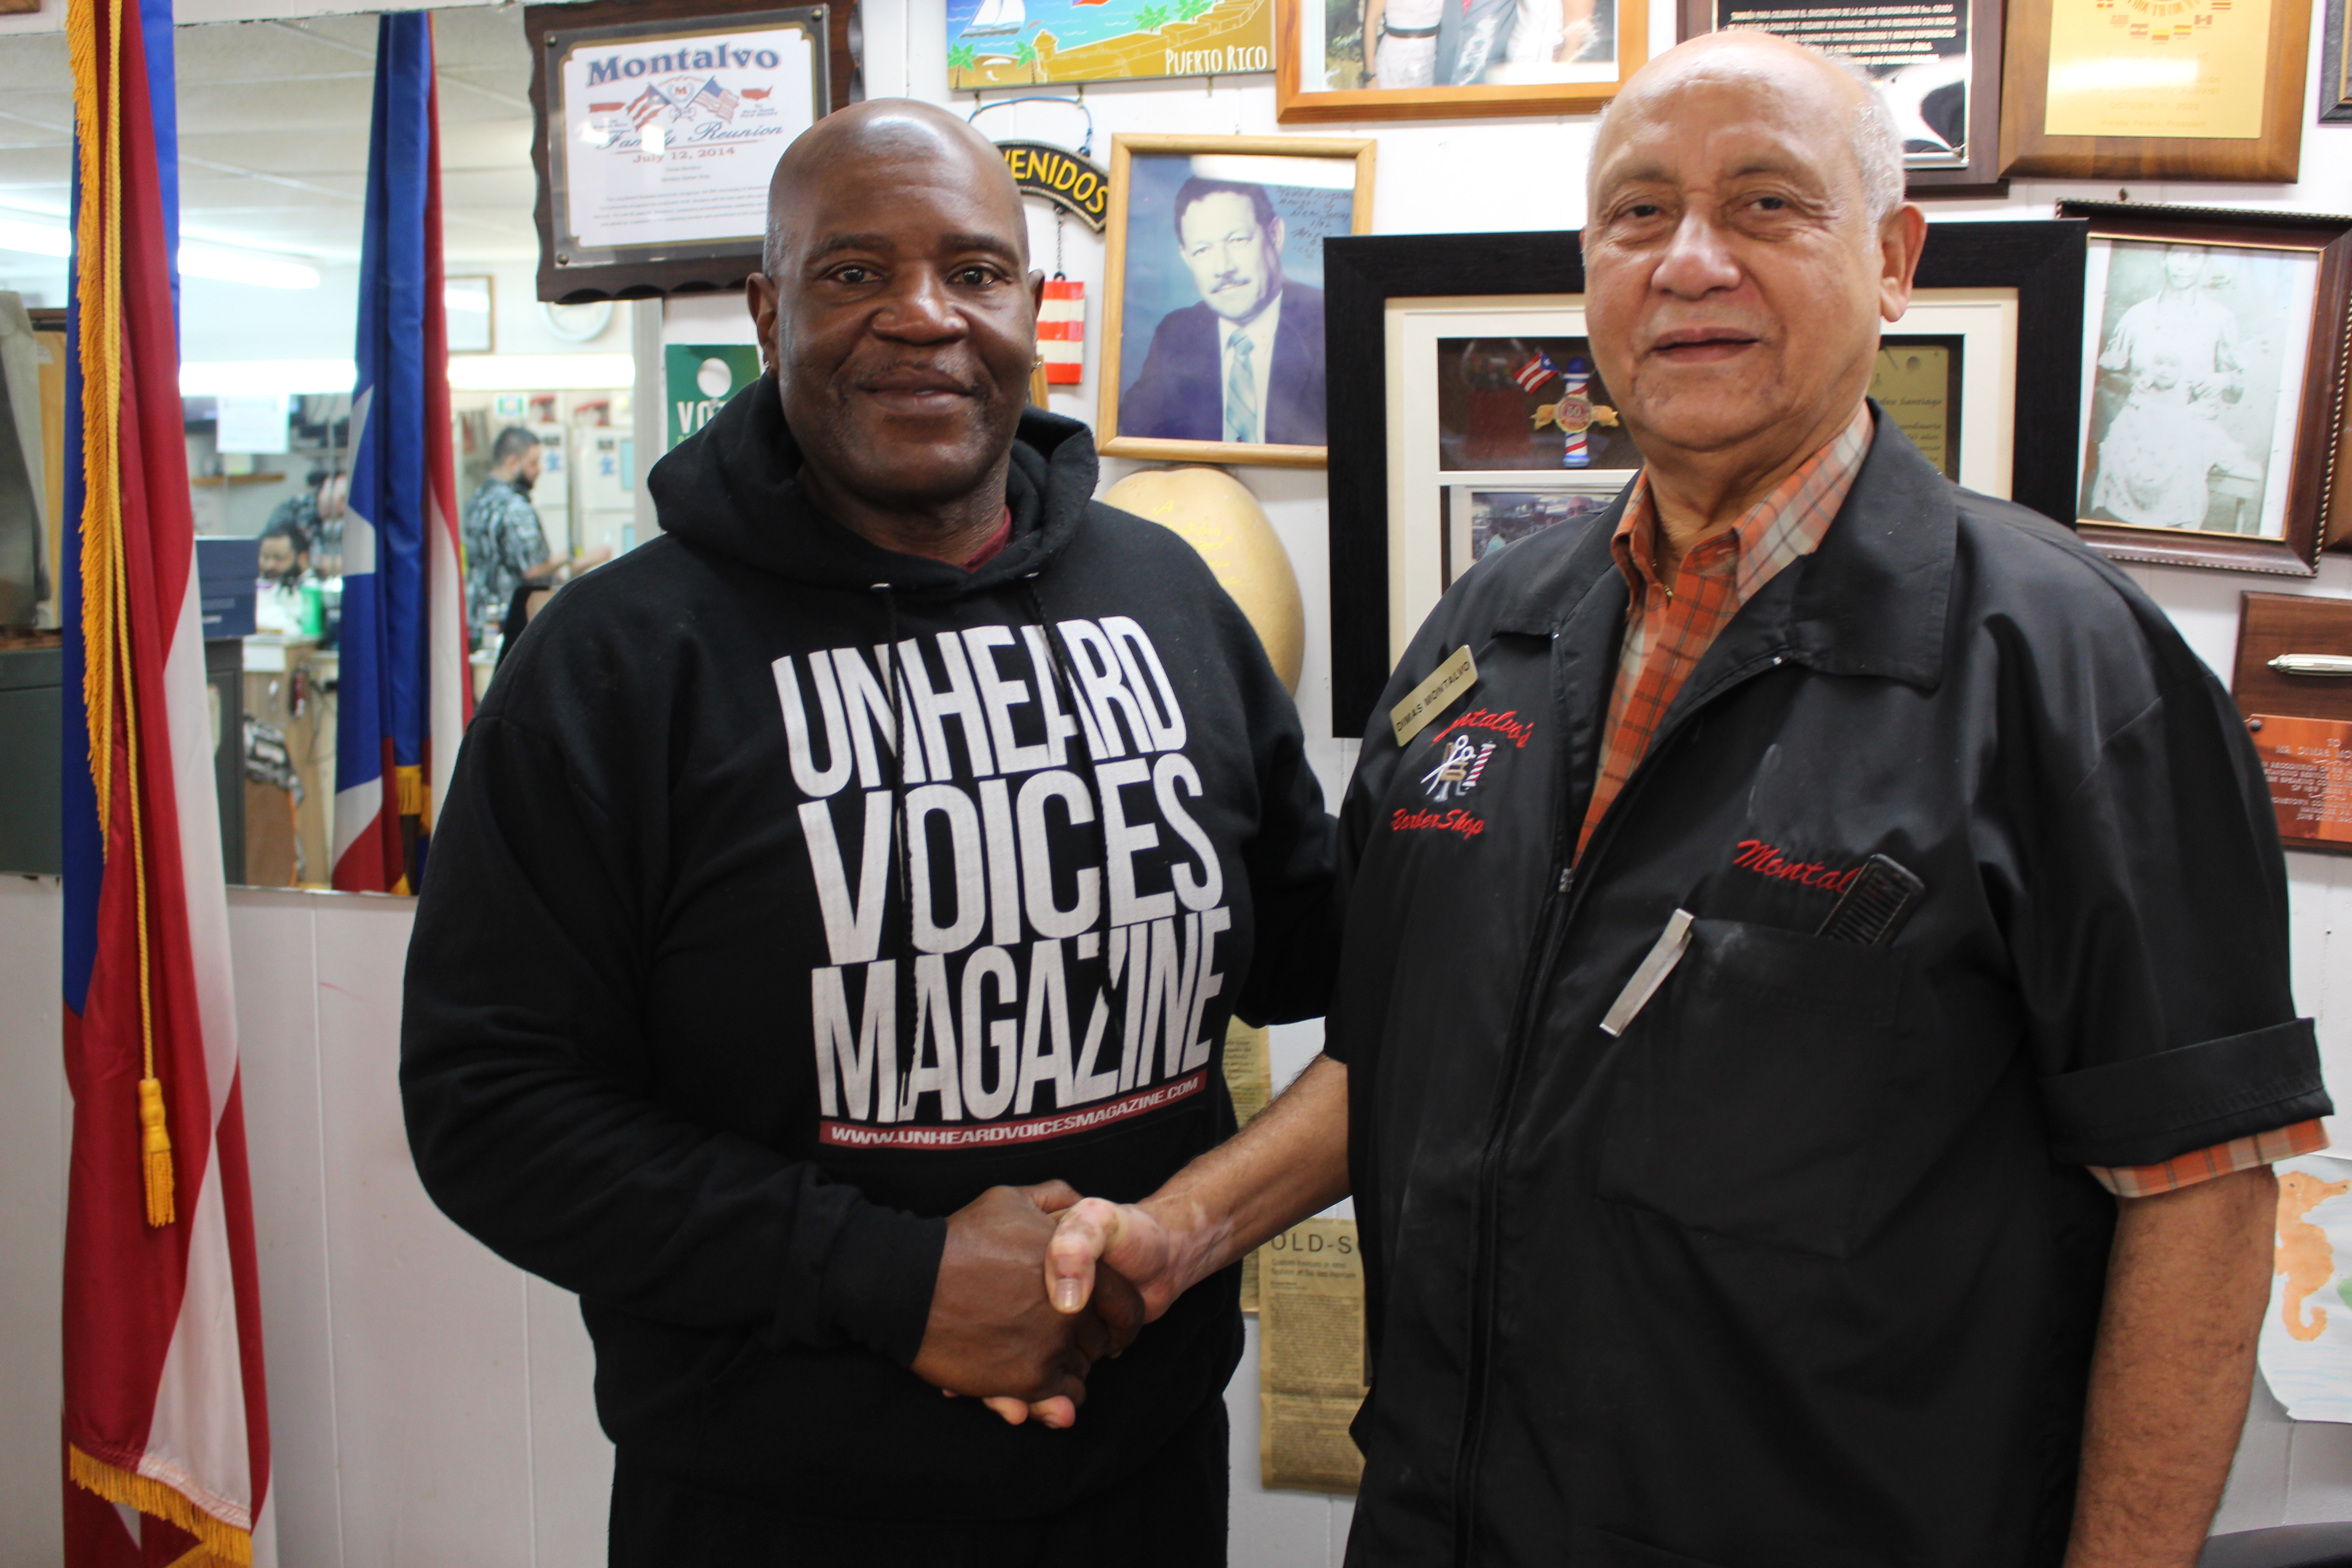 IMG 1995 Montalvos Barbershop : Serving The Long Branch Community For Over 40 Years